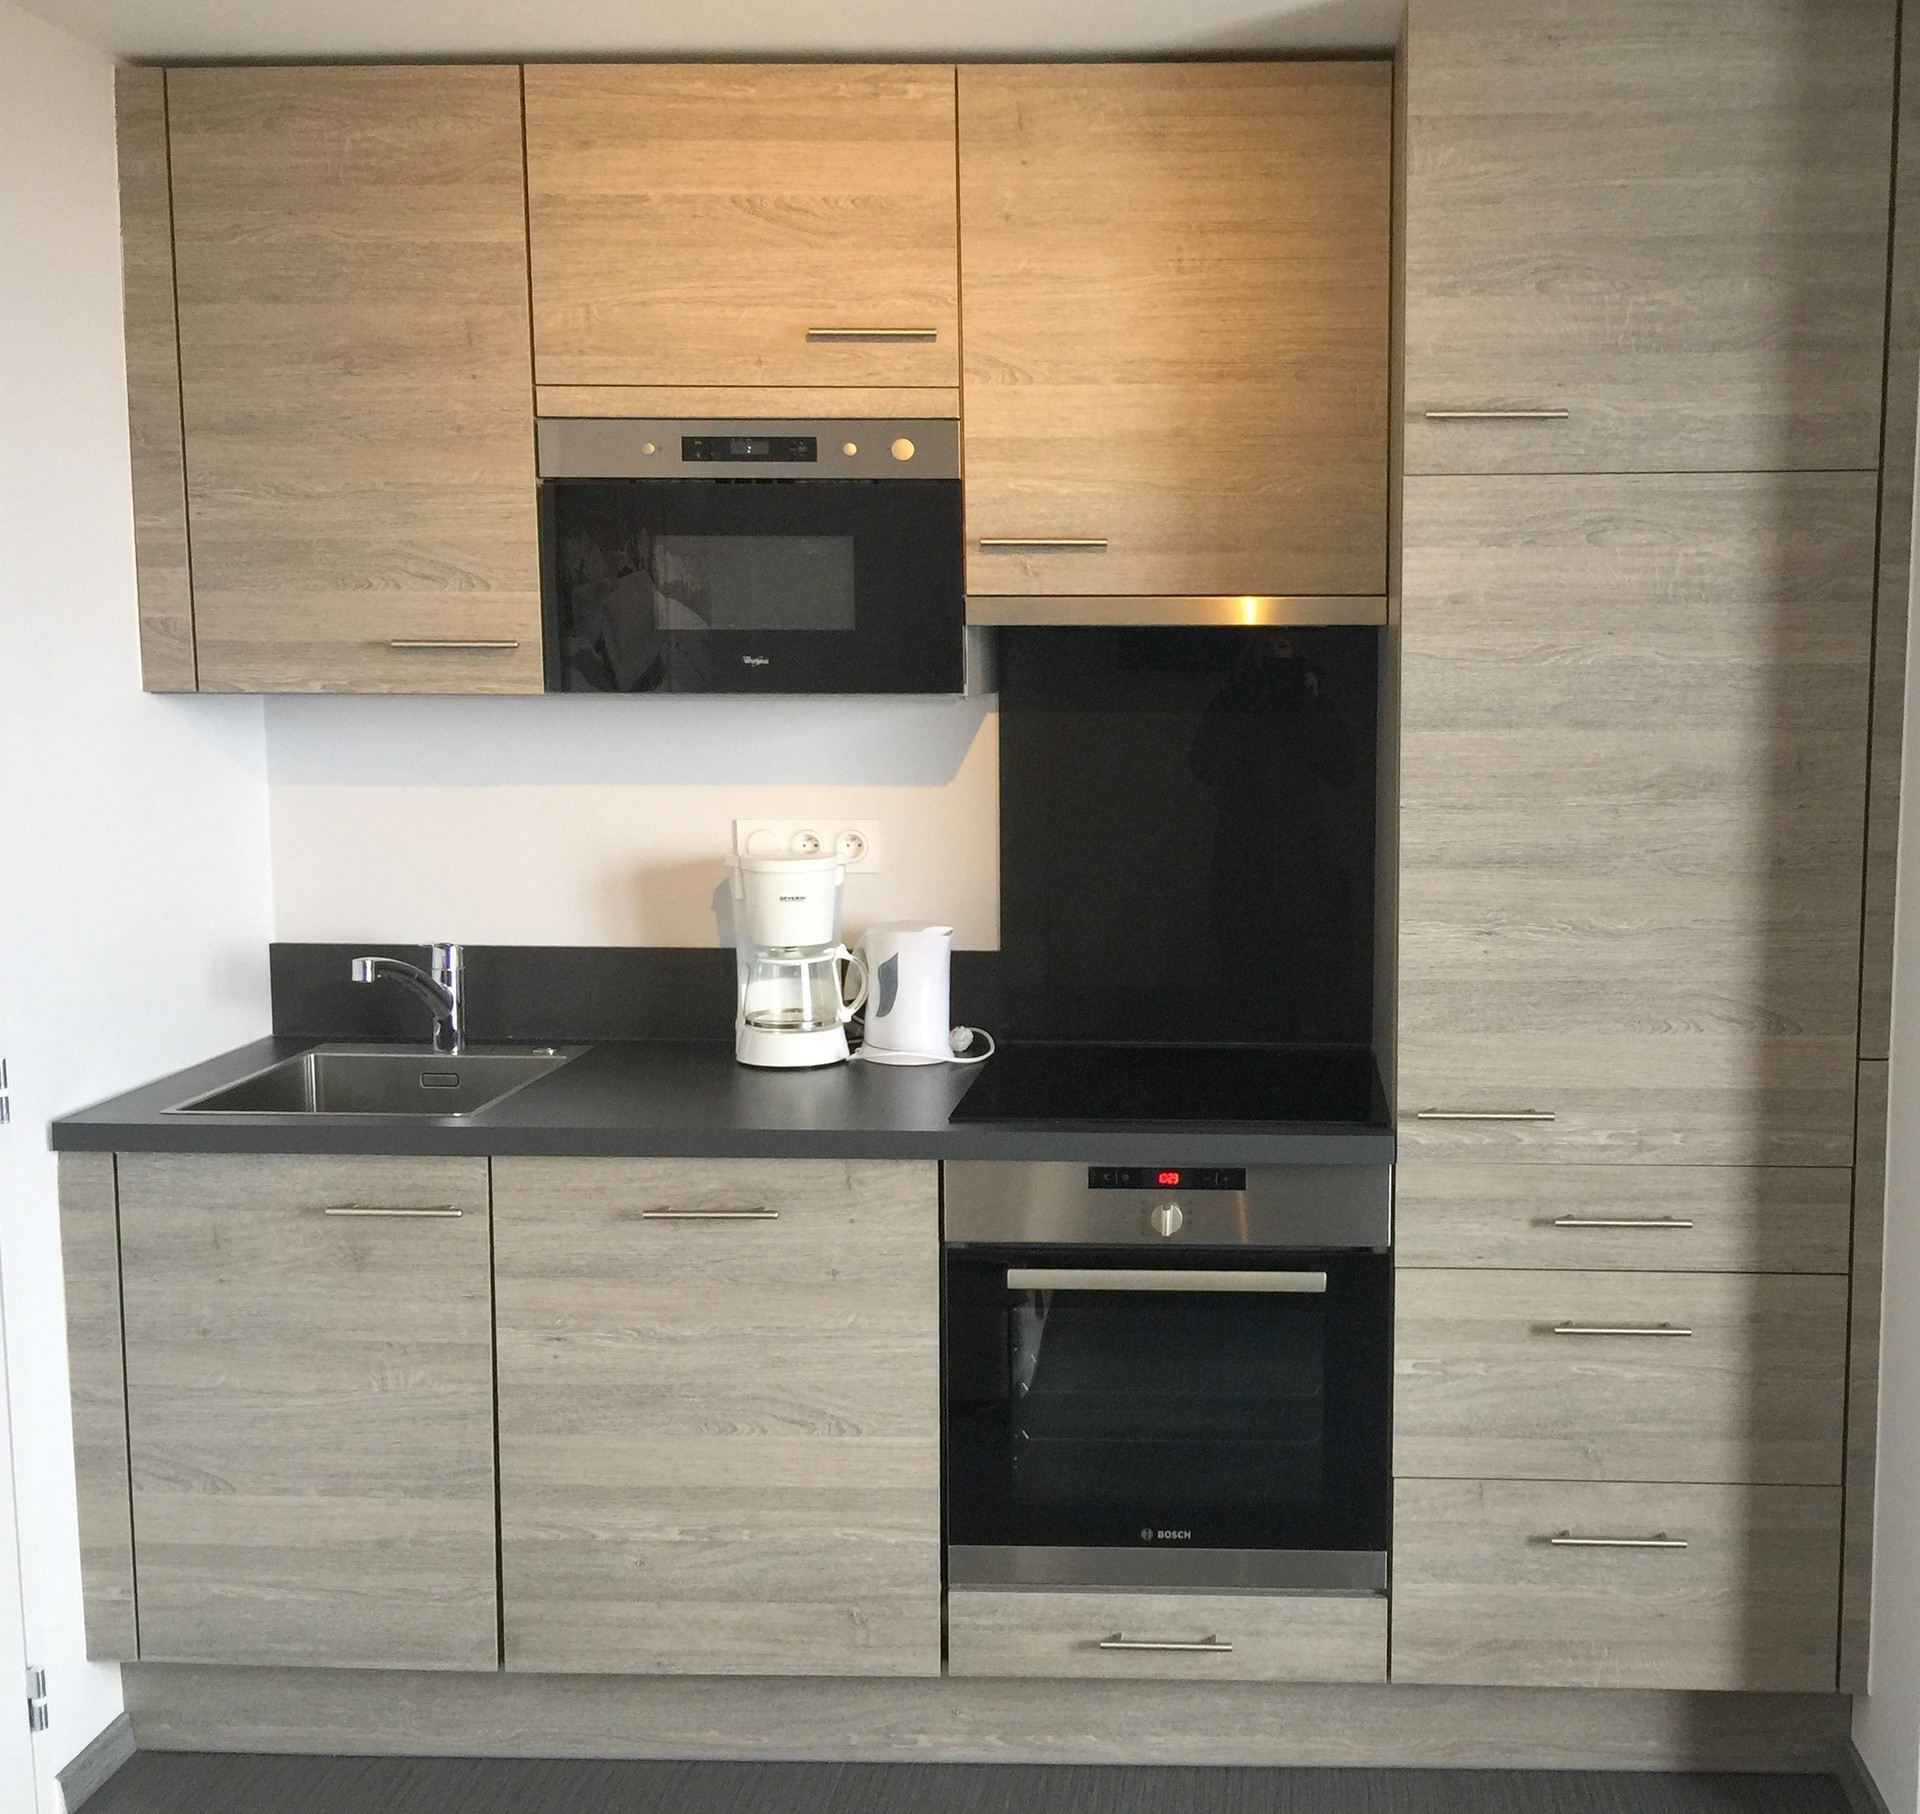 REINE BLANCHE 52 - APPARTEMENT 4 PERSONNES - 1 FLOCON BRONZE - VTI